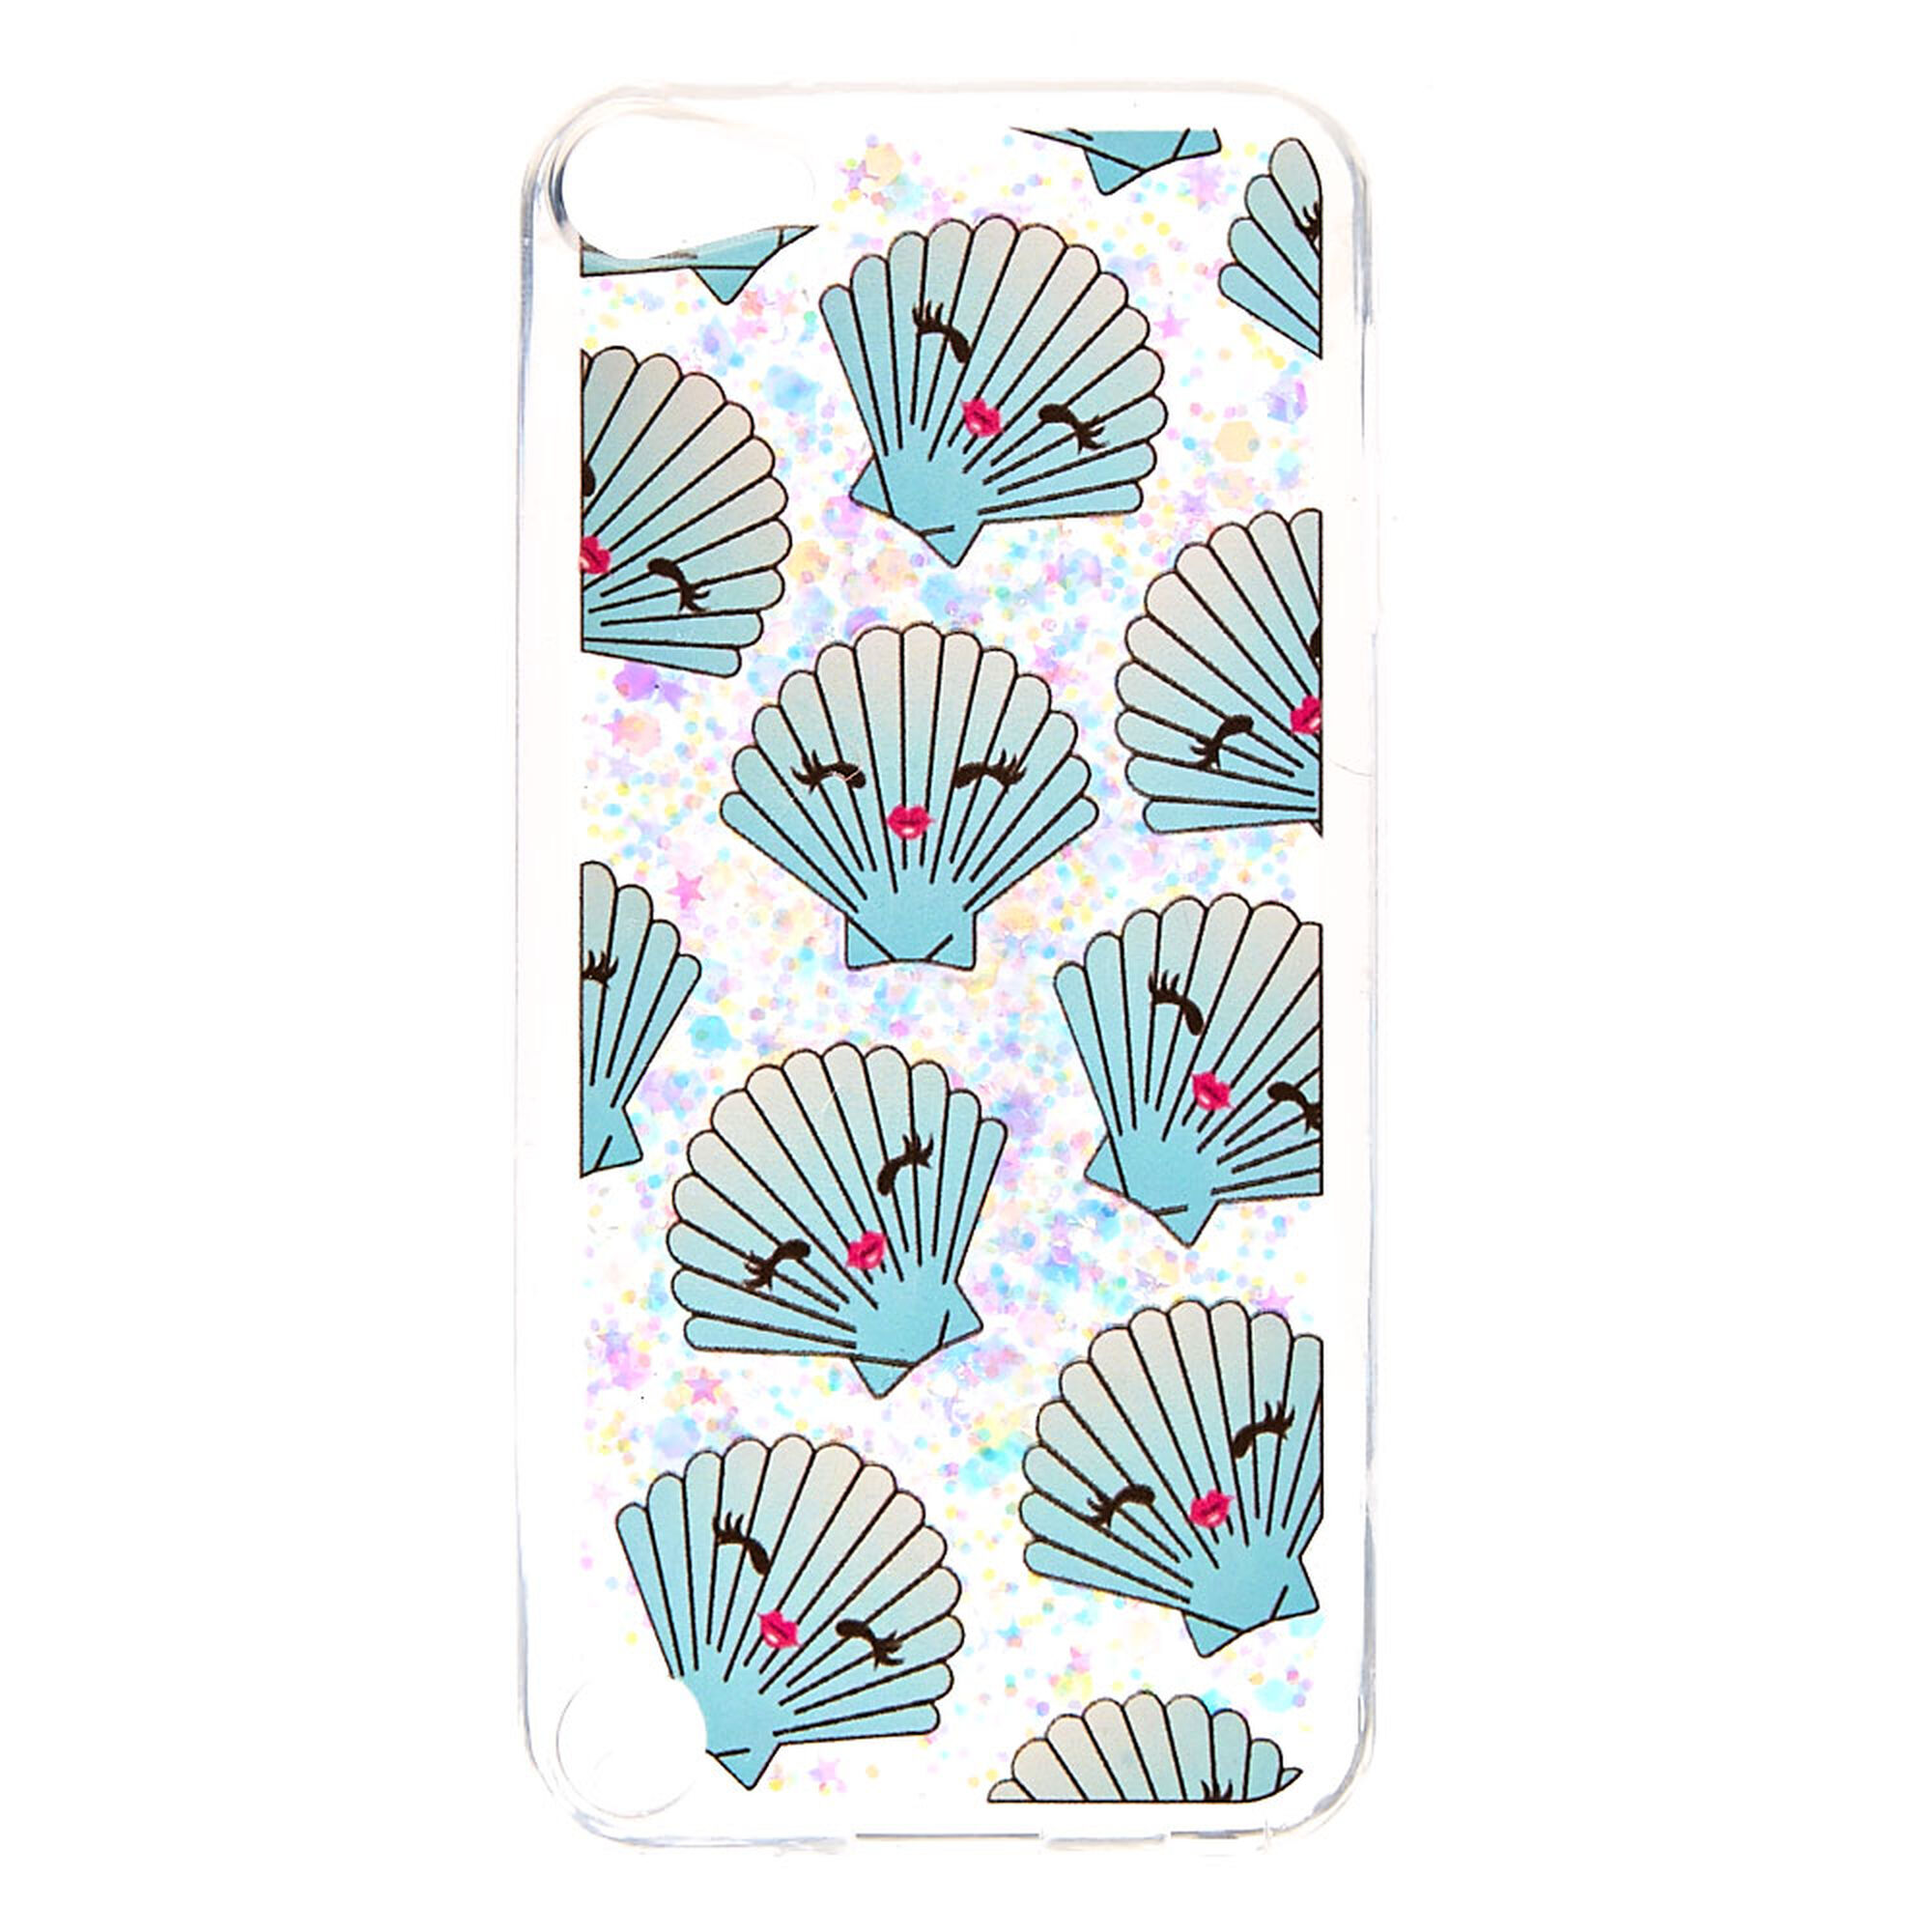 info for eed25 34675 Claire S Ipod Touch Cases: Follow Your Dreams Iridescent IPod® Touch ...